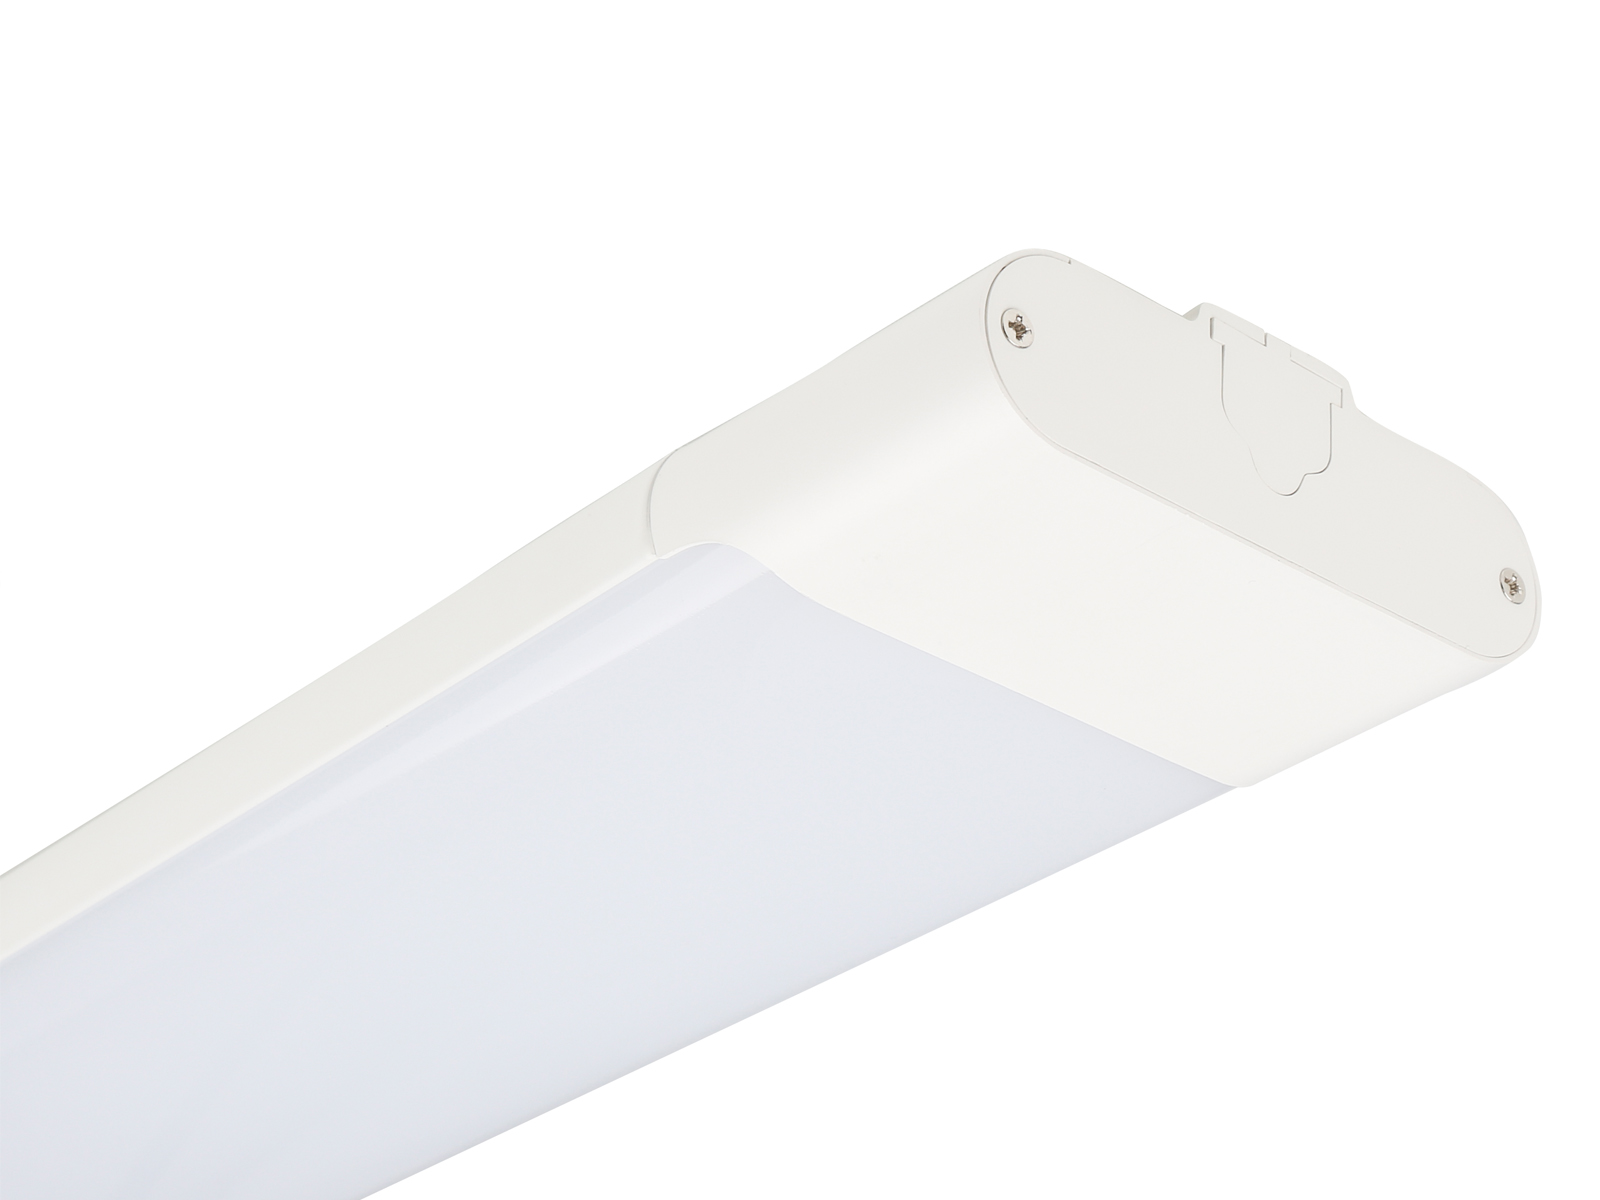 DB21 LED Batten